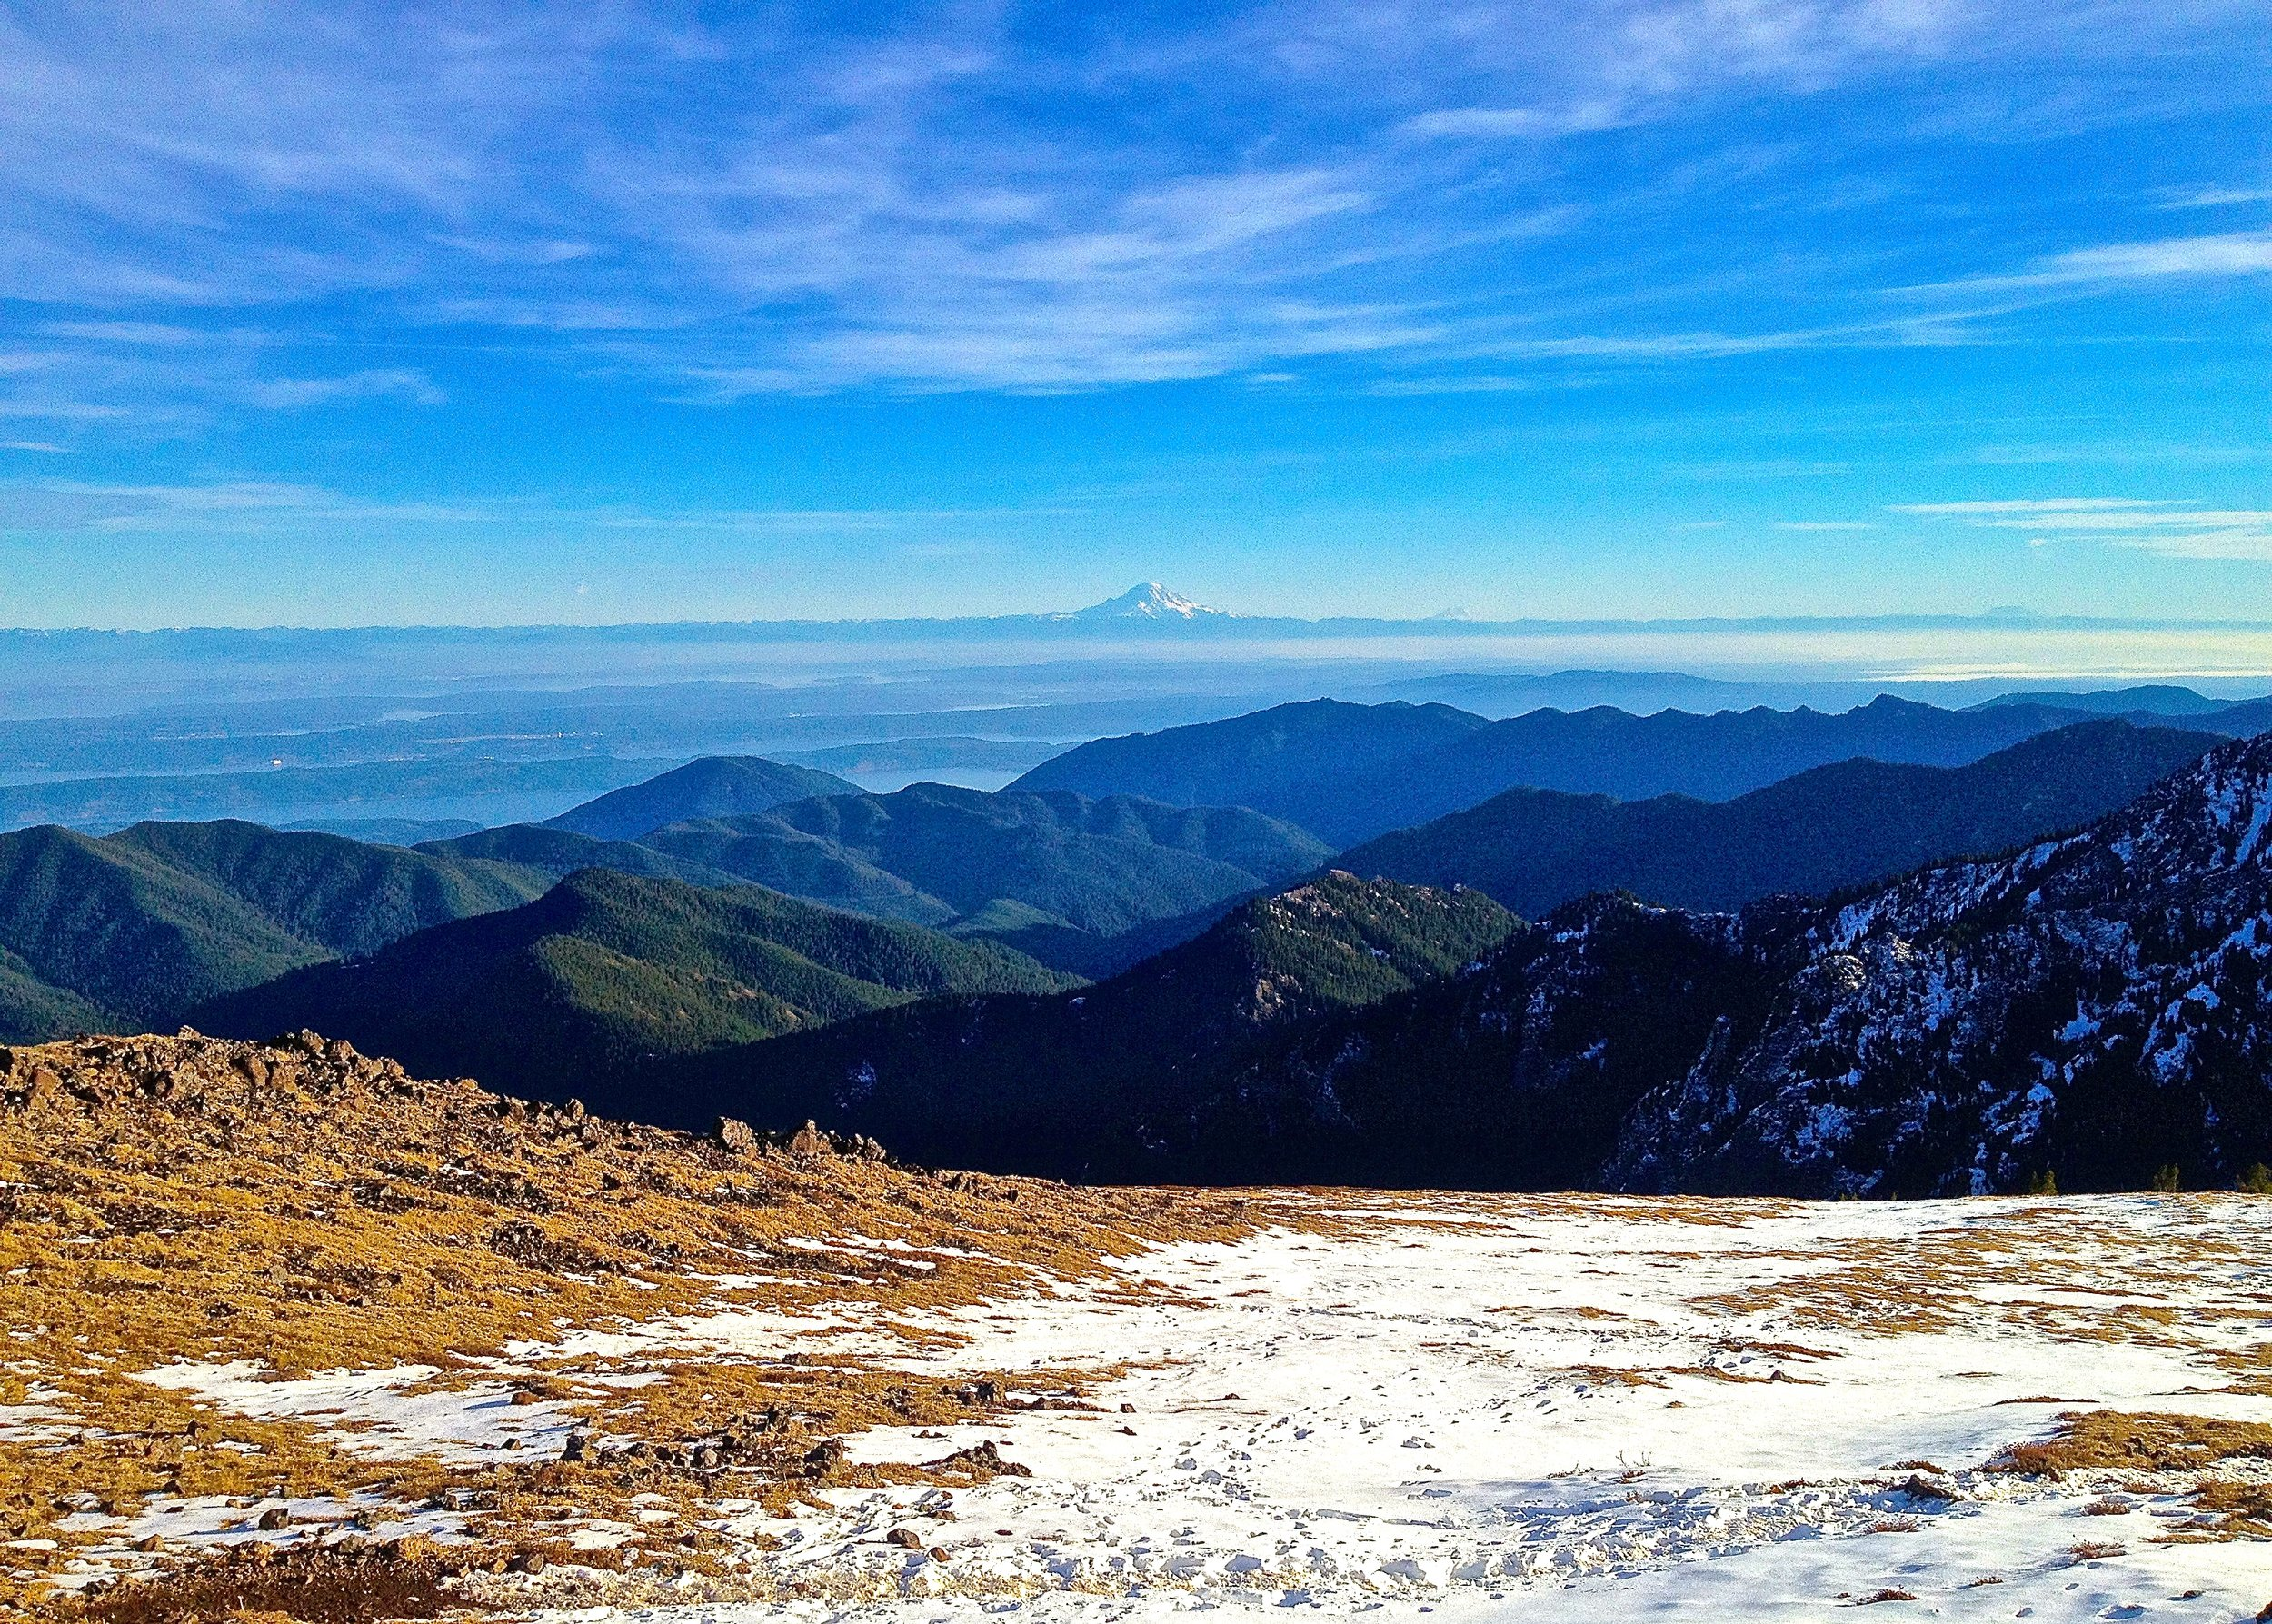 MT. TOWNSEND, WA - LOOKING SOUTH TOWARDS MT. RAINIER